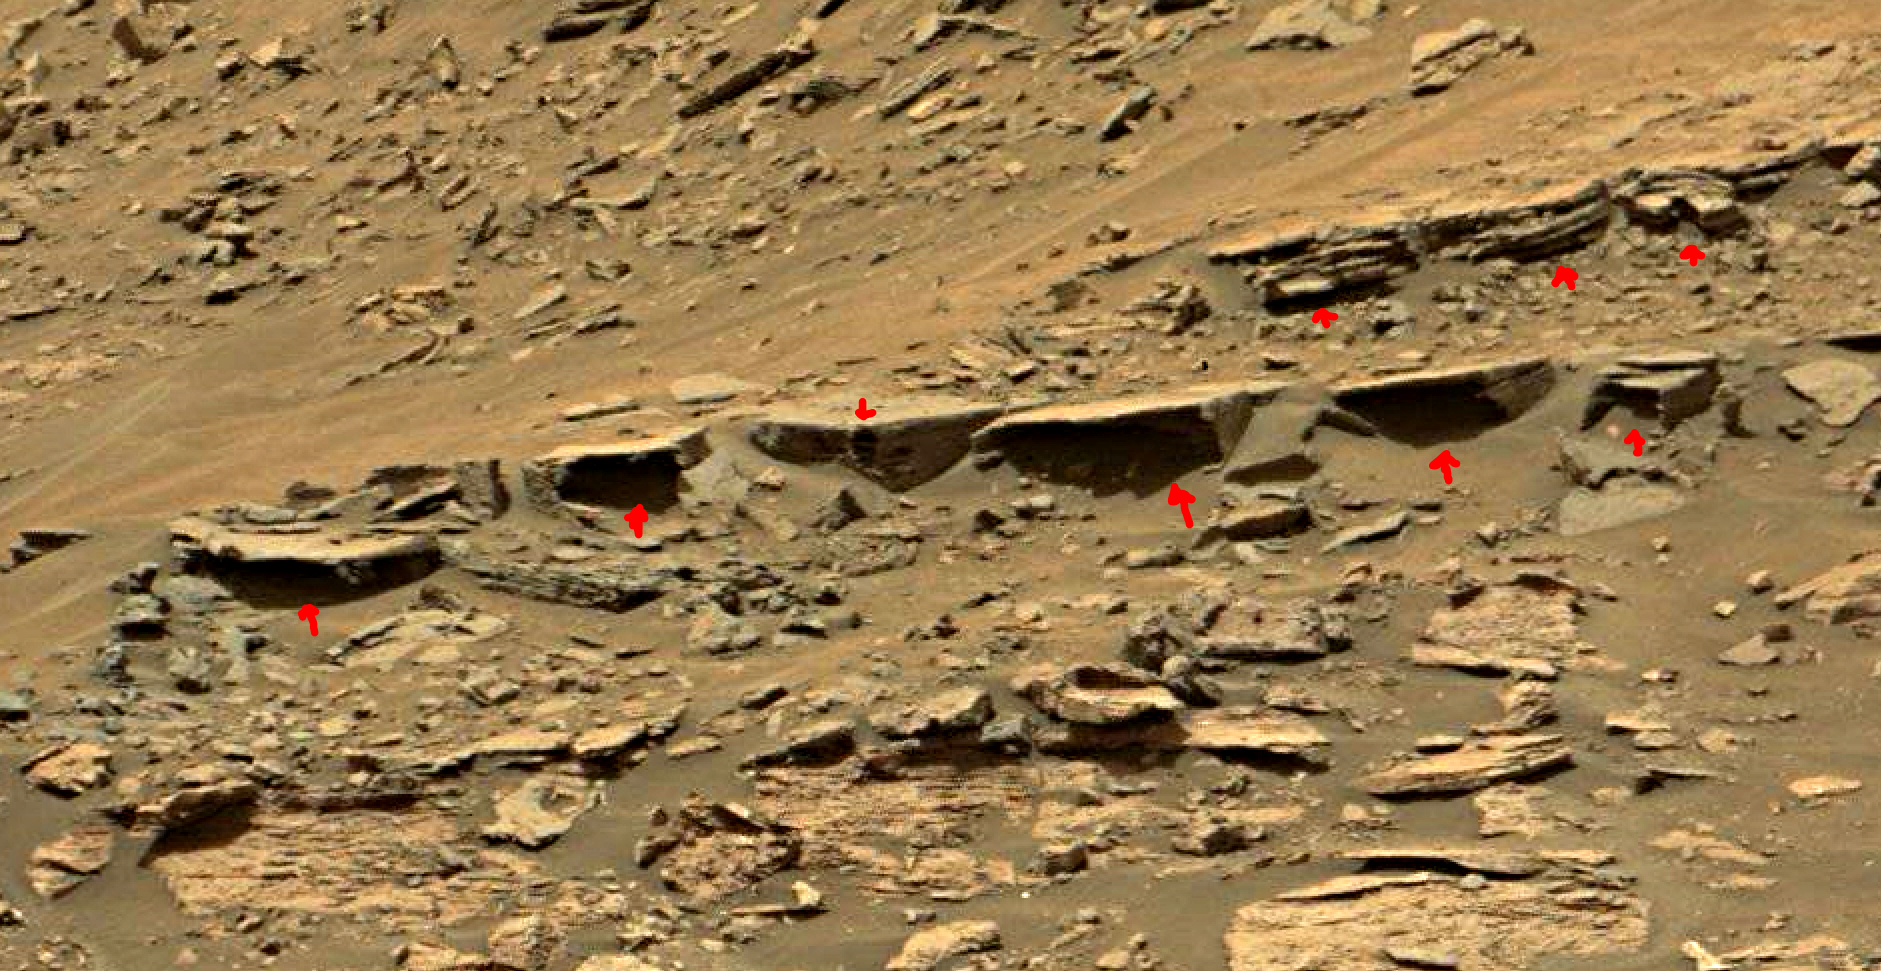 mars sol 1447 anomaly artifacts 5a - was life on mars